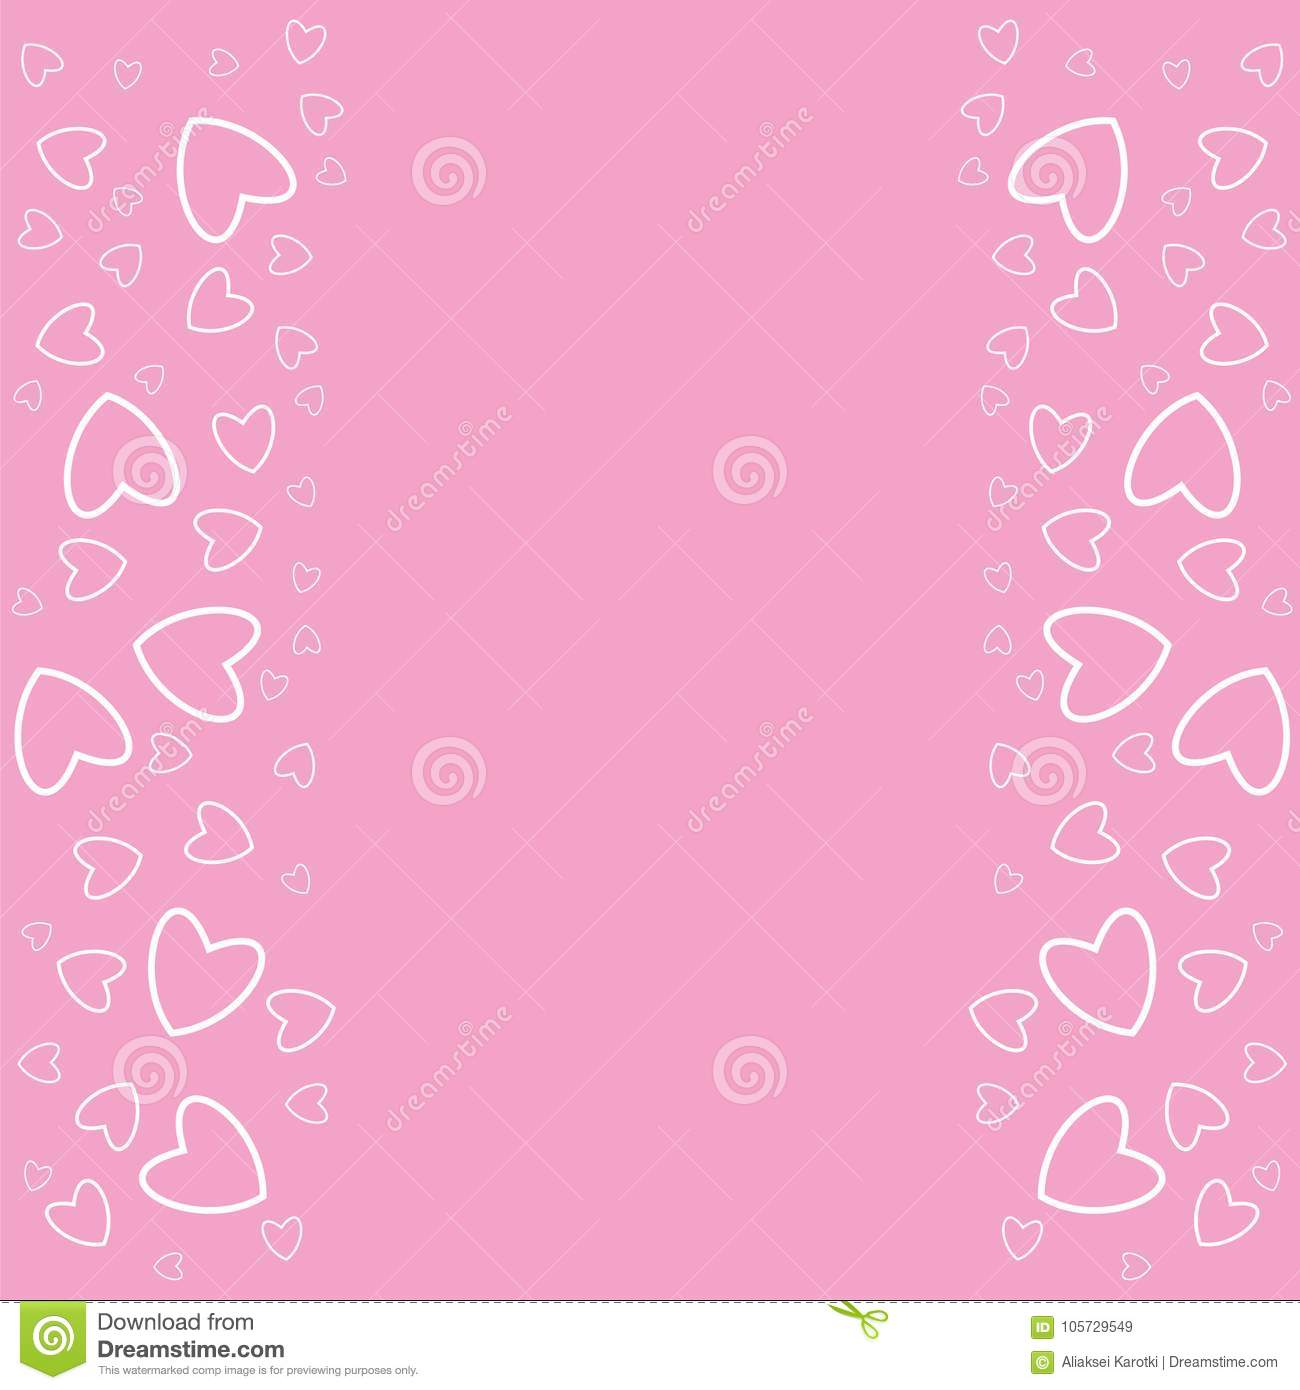 Frame of hearts on a pink background prints greeting cards frame of hearts on a pink background prints greeting cards invitations for holiday birthday wedding valentines day party vector illustration filmwisefo